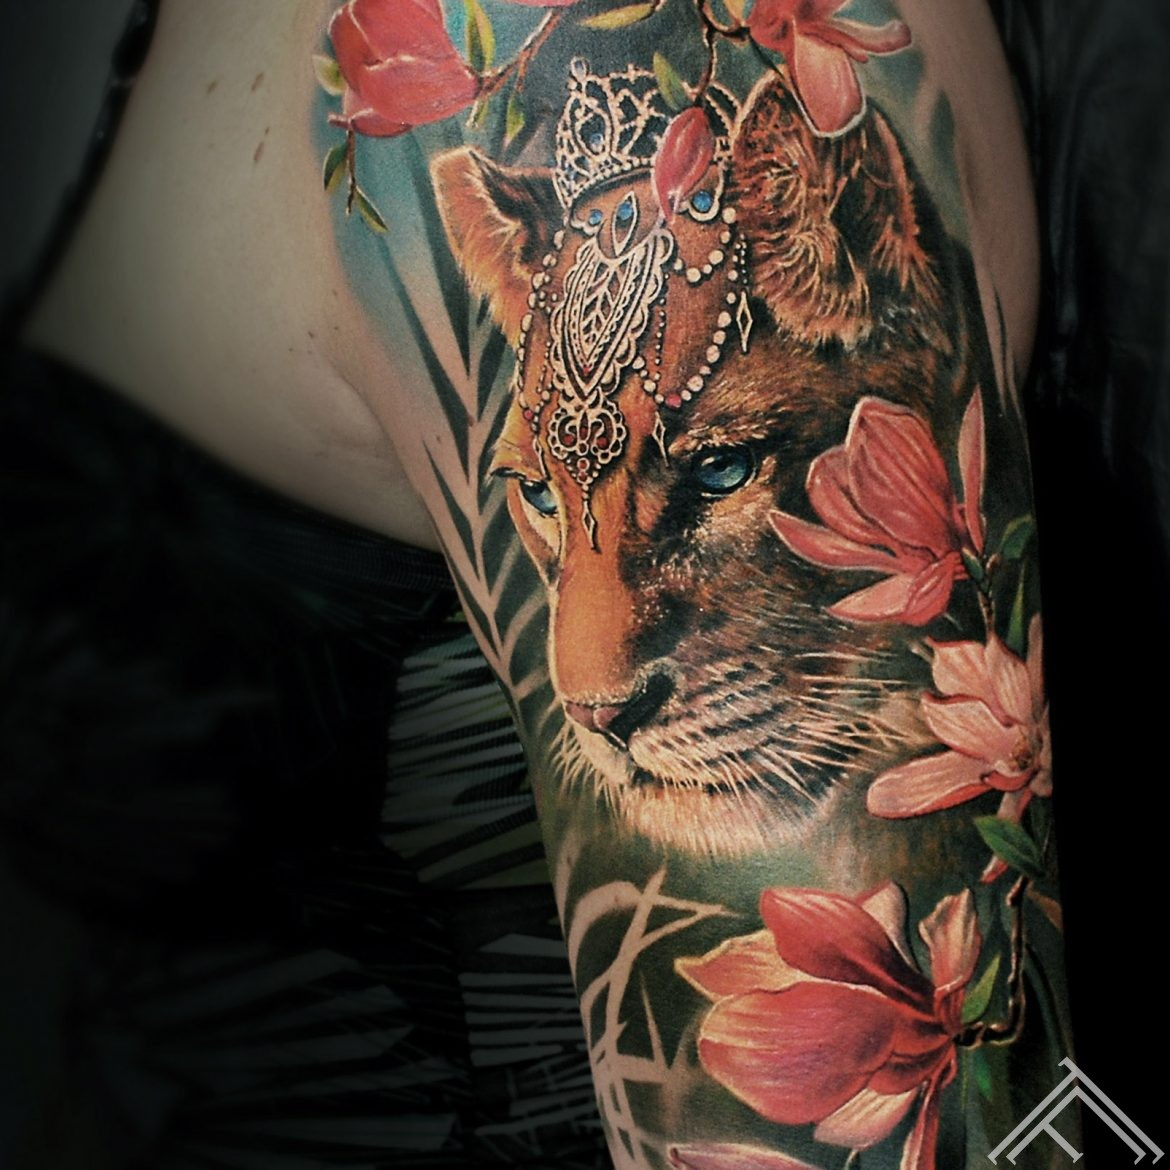 tiger-crown-princess-flowers-tetovejums-marispavlo-art-tattoofrequency-magnolia-zieds-magnolija-close up